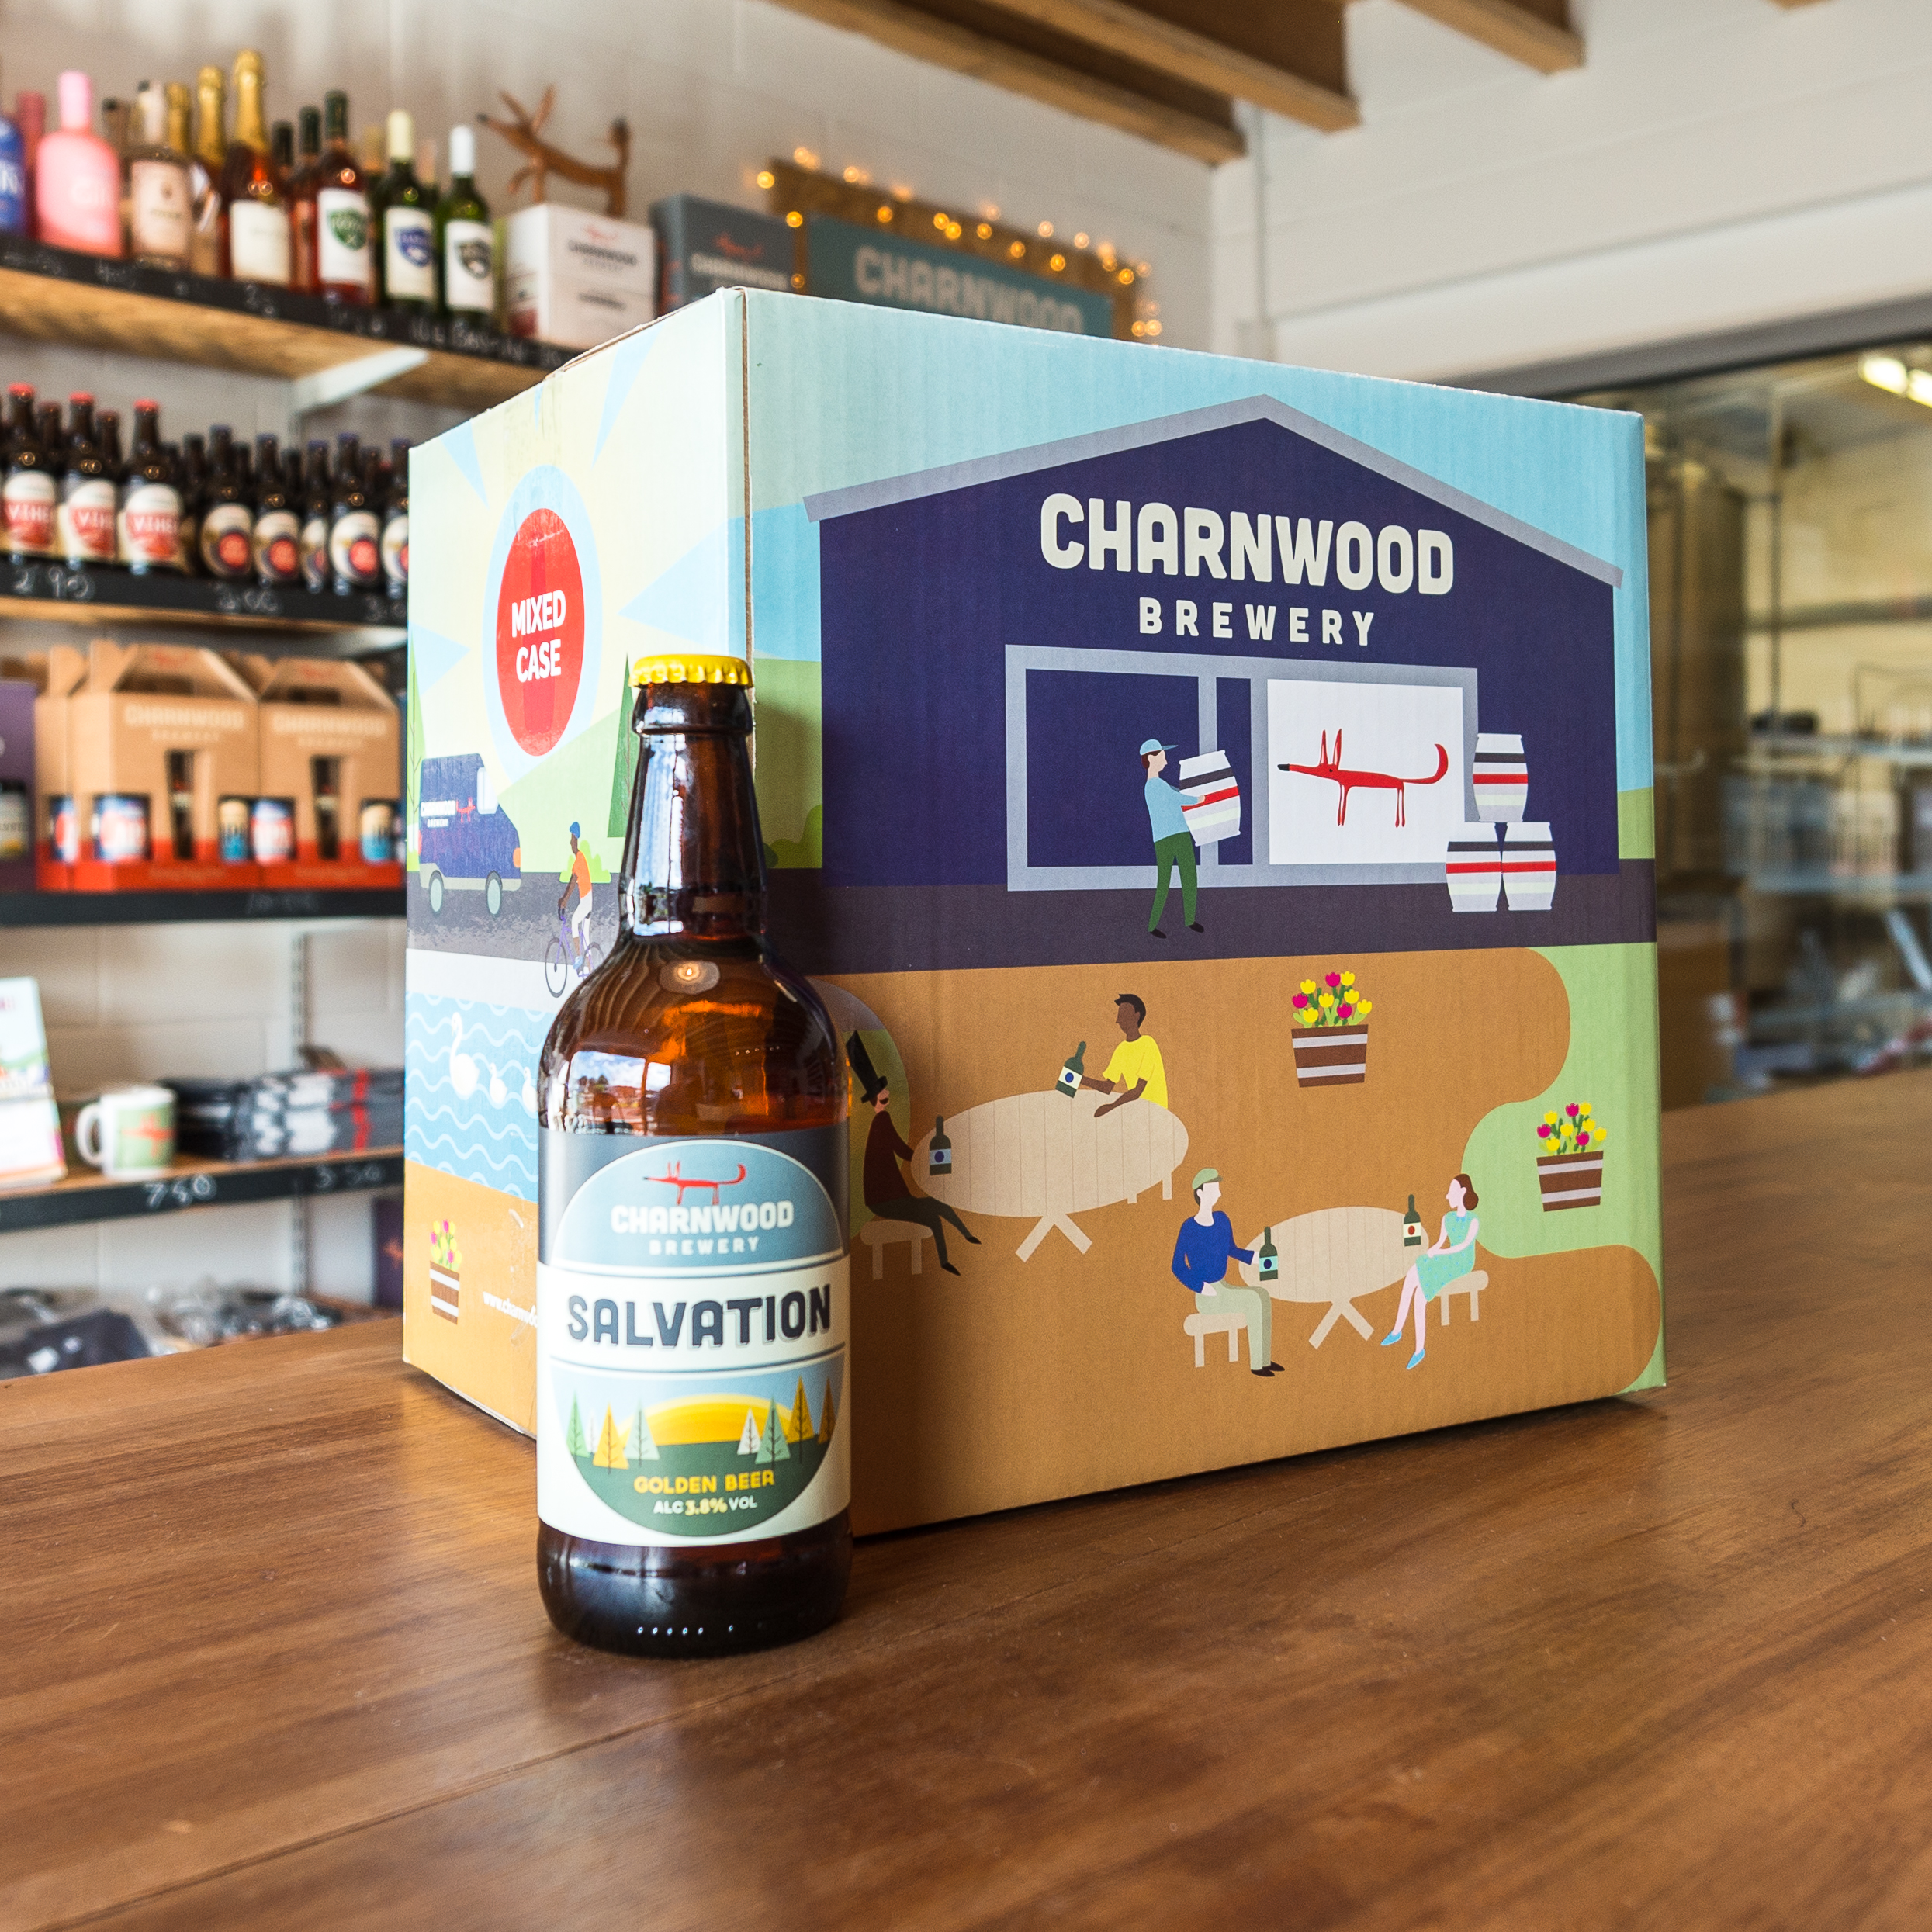 Salvation case from Charnwood Brewery